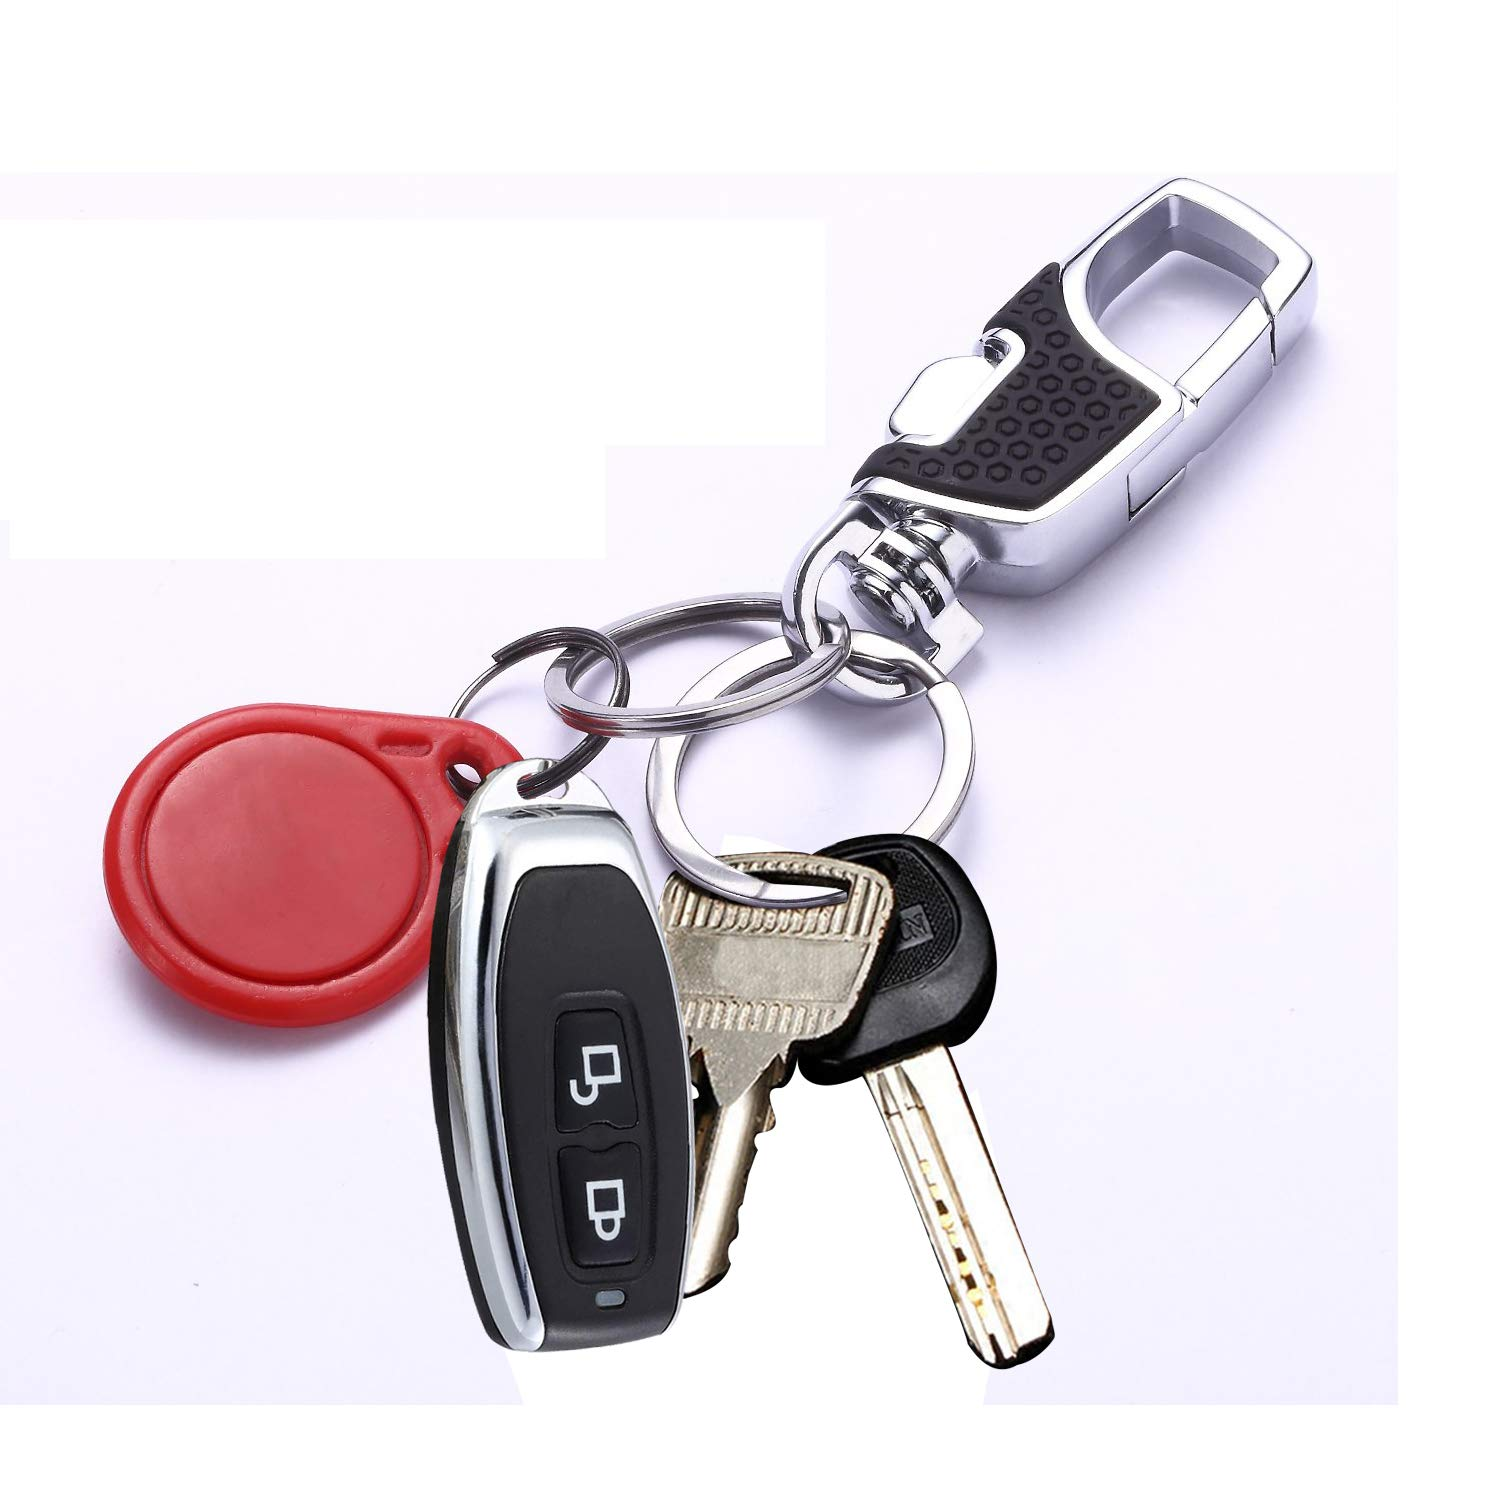 Key Chain Hotetey KeyChain with 2 Key Rings Heavy Duty Key Chain for Men and Women, 2 Pack (Black)